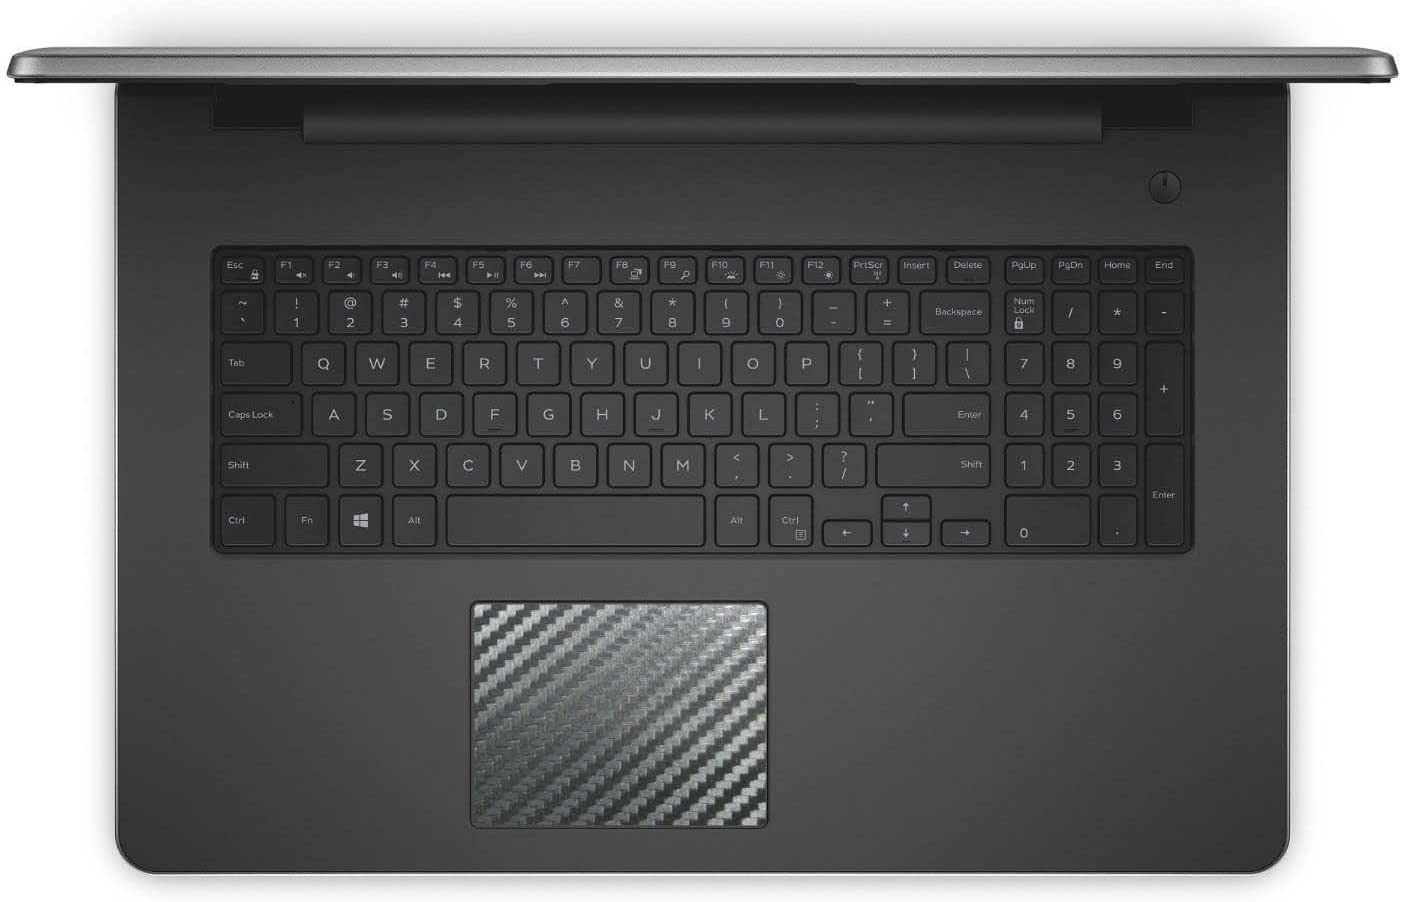 BingoBuy 5-Pack Black Carbon Fiber Touchpad Trackpad Decal Vinyl Sticker Skin Cover Protector for Dell inspiron 17-3000 17-5000 Series (17-3780/17-3781/17-3785/17-3793)